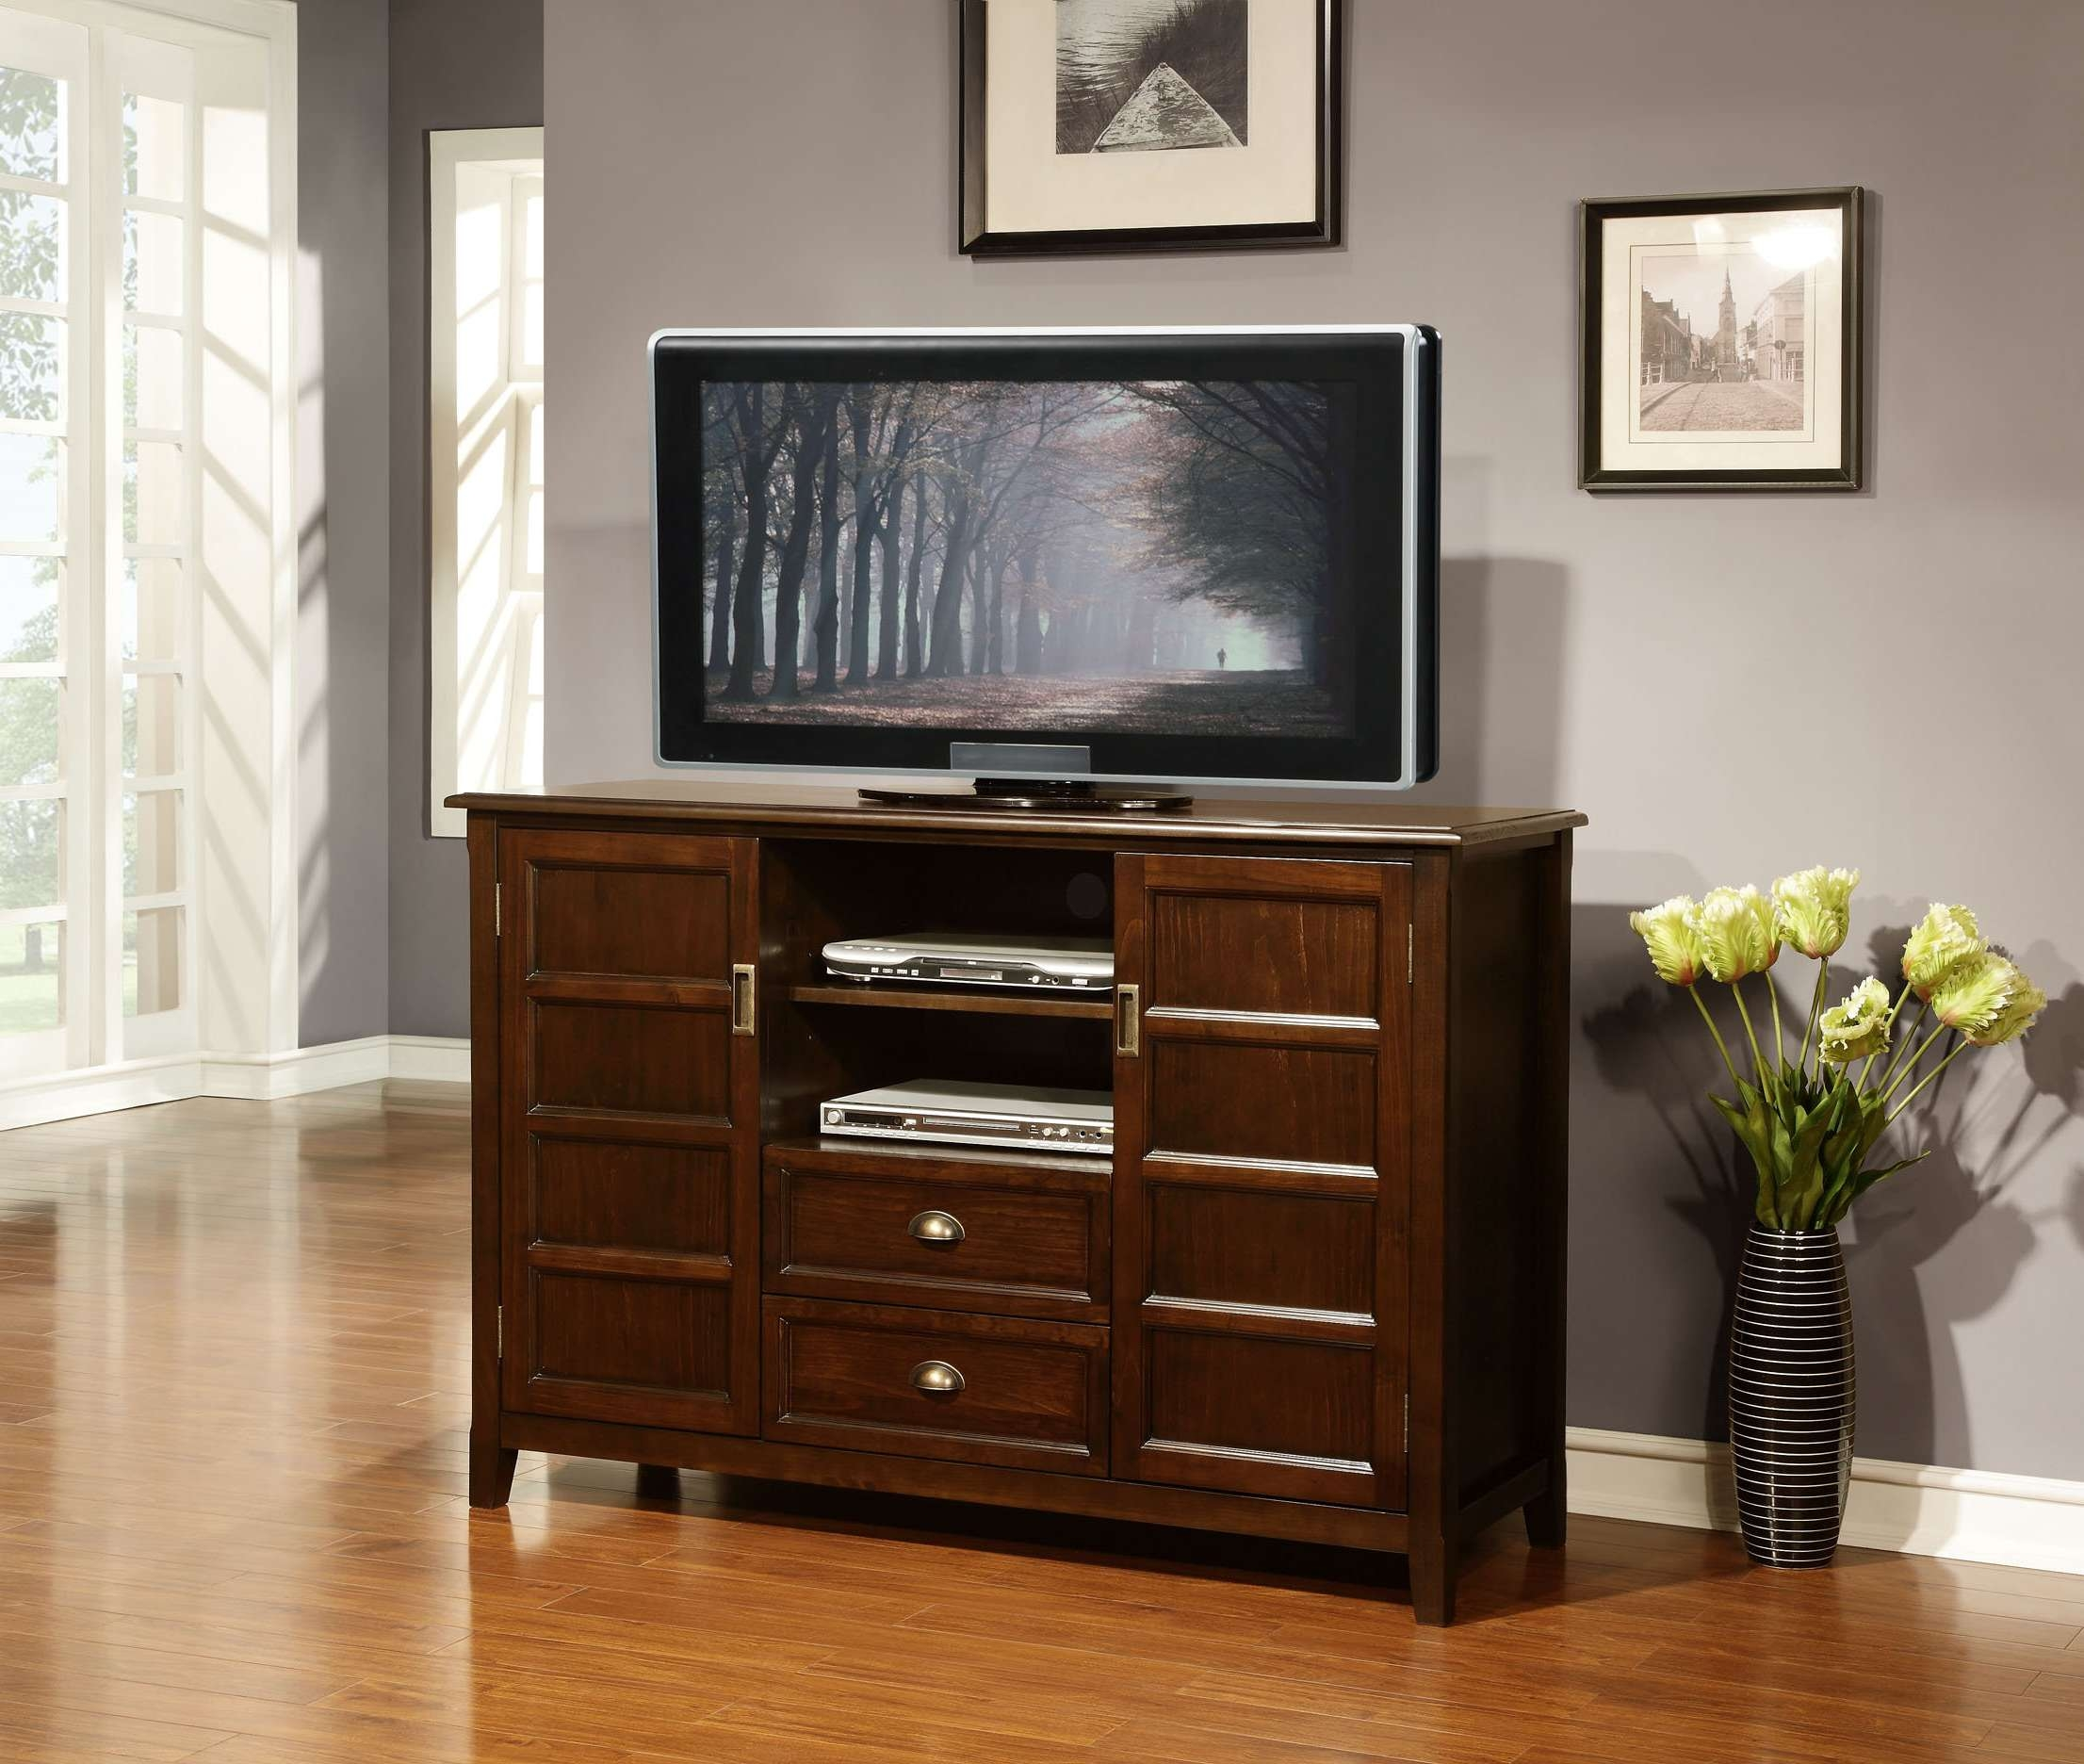 Dark Brown Stained Tv Stand With Two Shelves And Drawers On The With Regard To Light Colored Tv Stands (View 4 of 15)